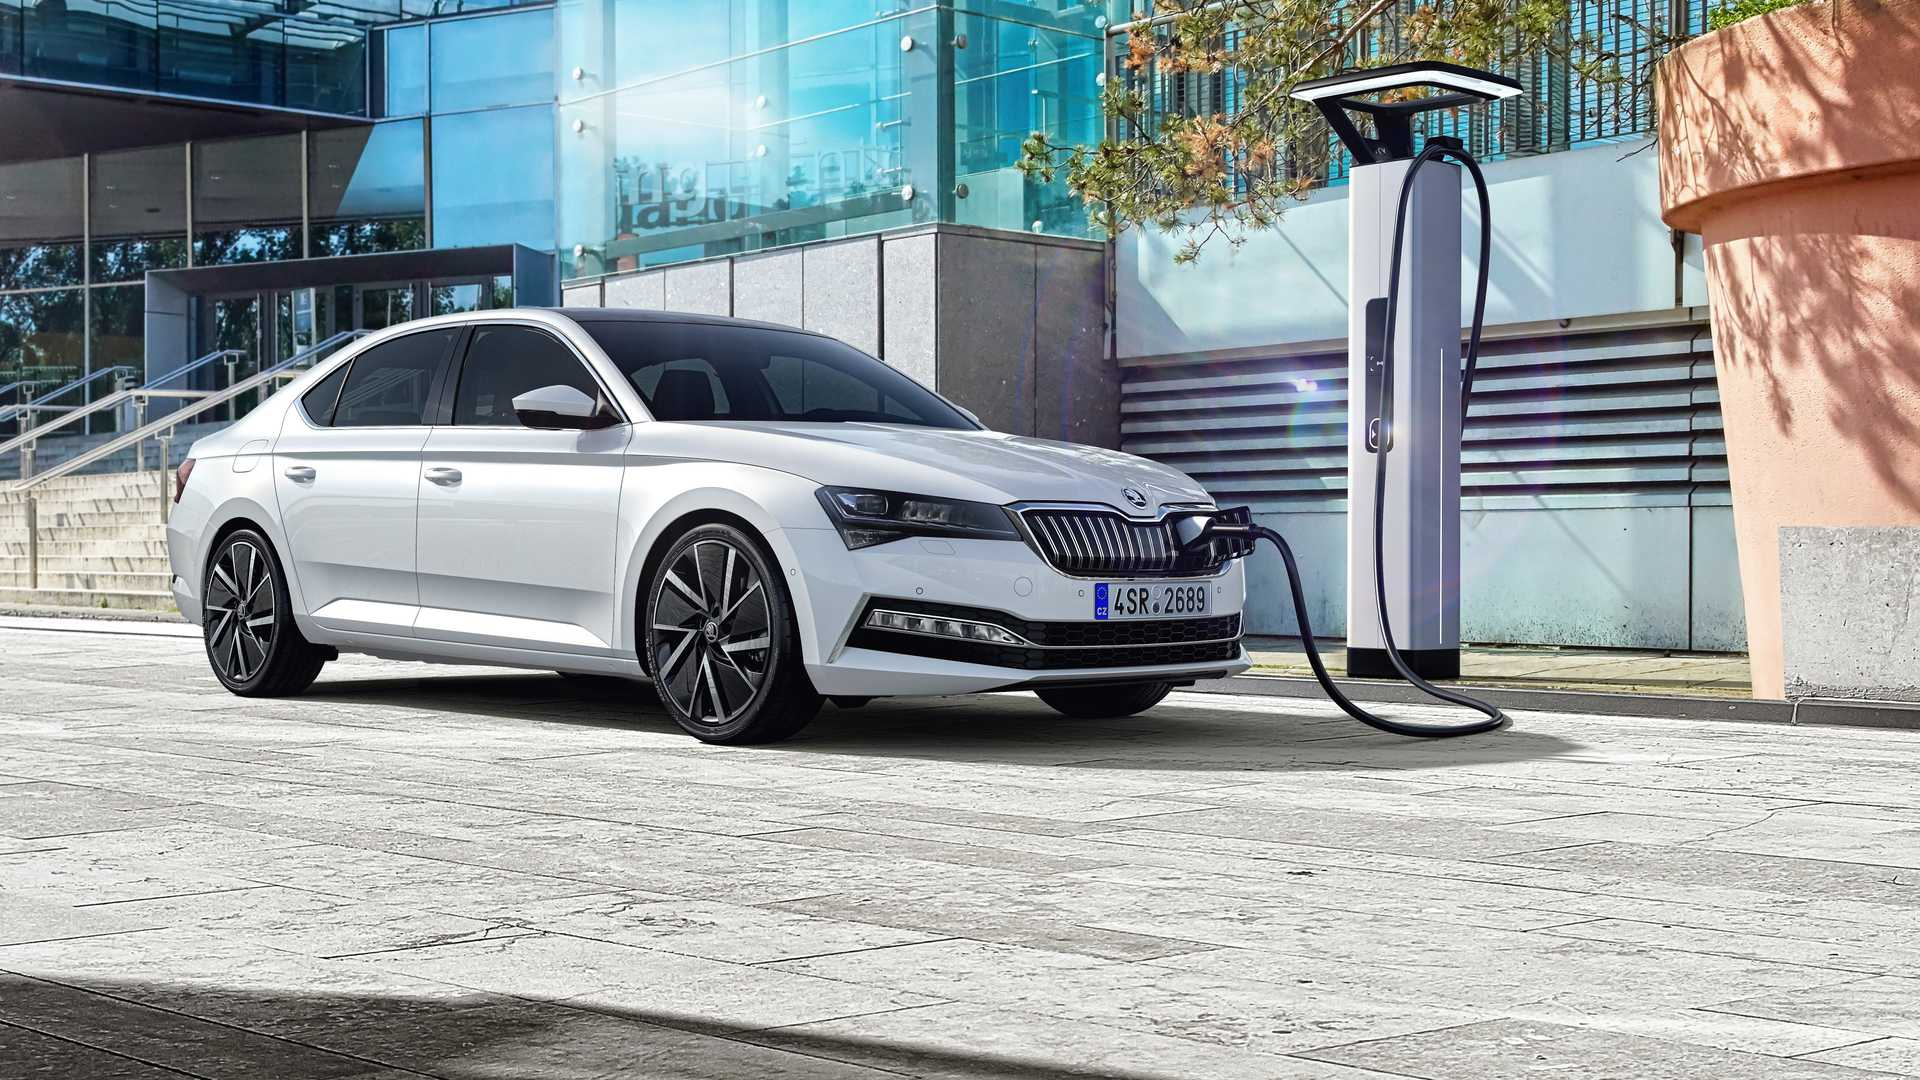 2020-skoda-superb-facelift-2